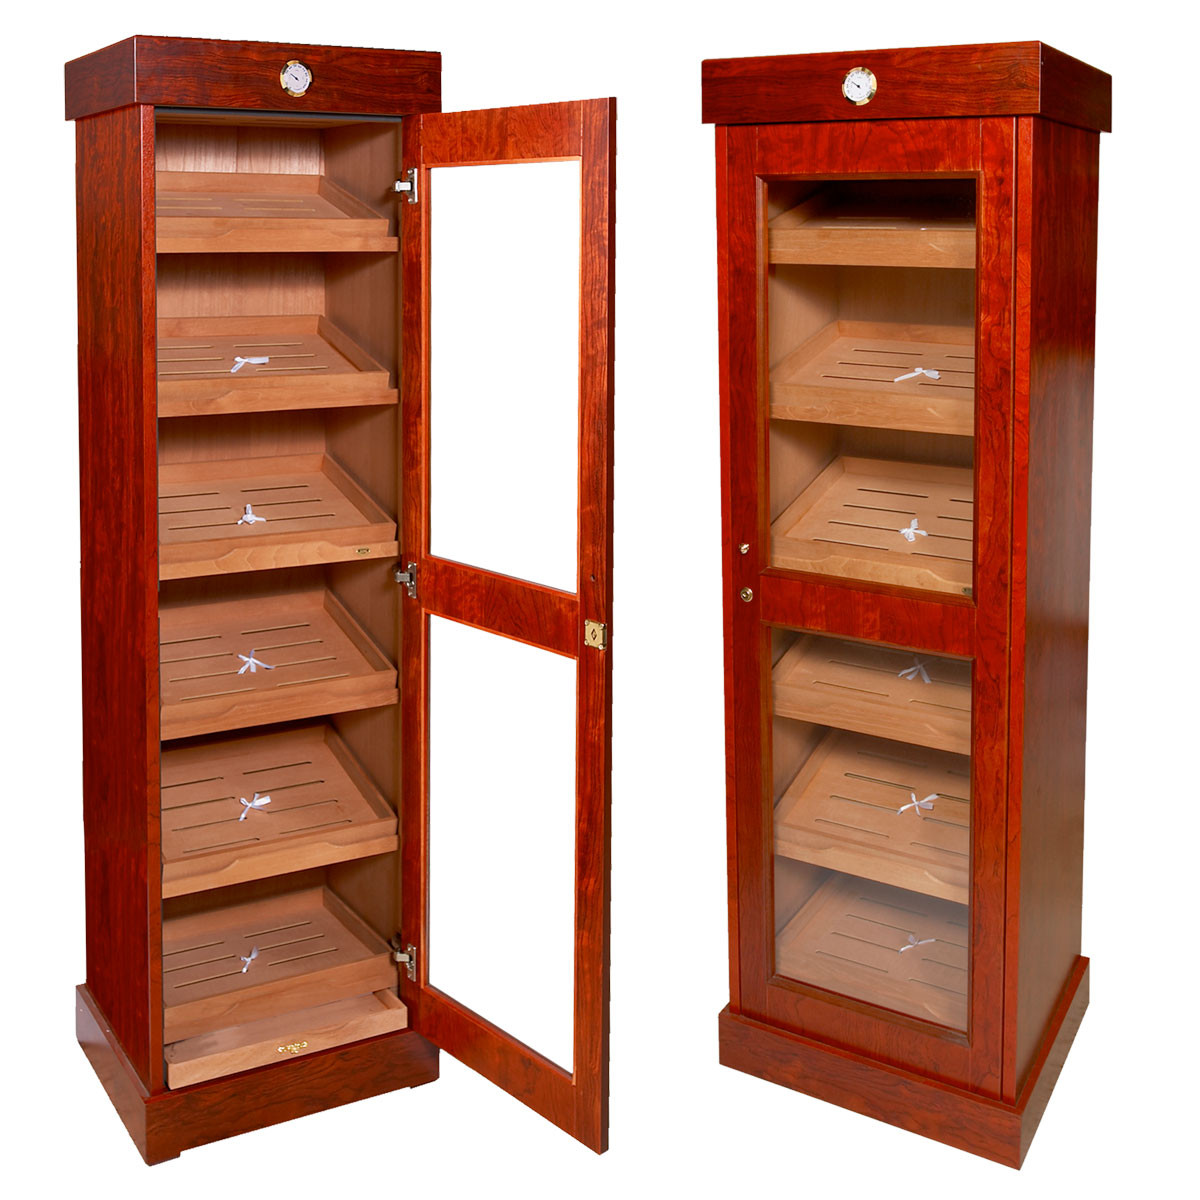 cigar distributor wholesale reagan regan humidor and of humidors htm cabinet